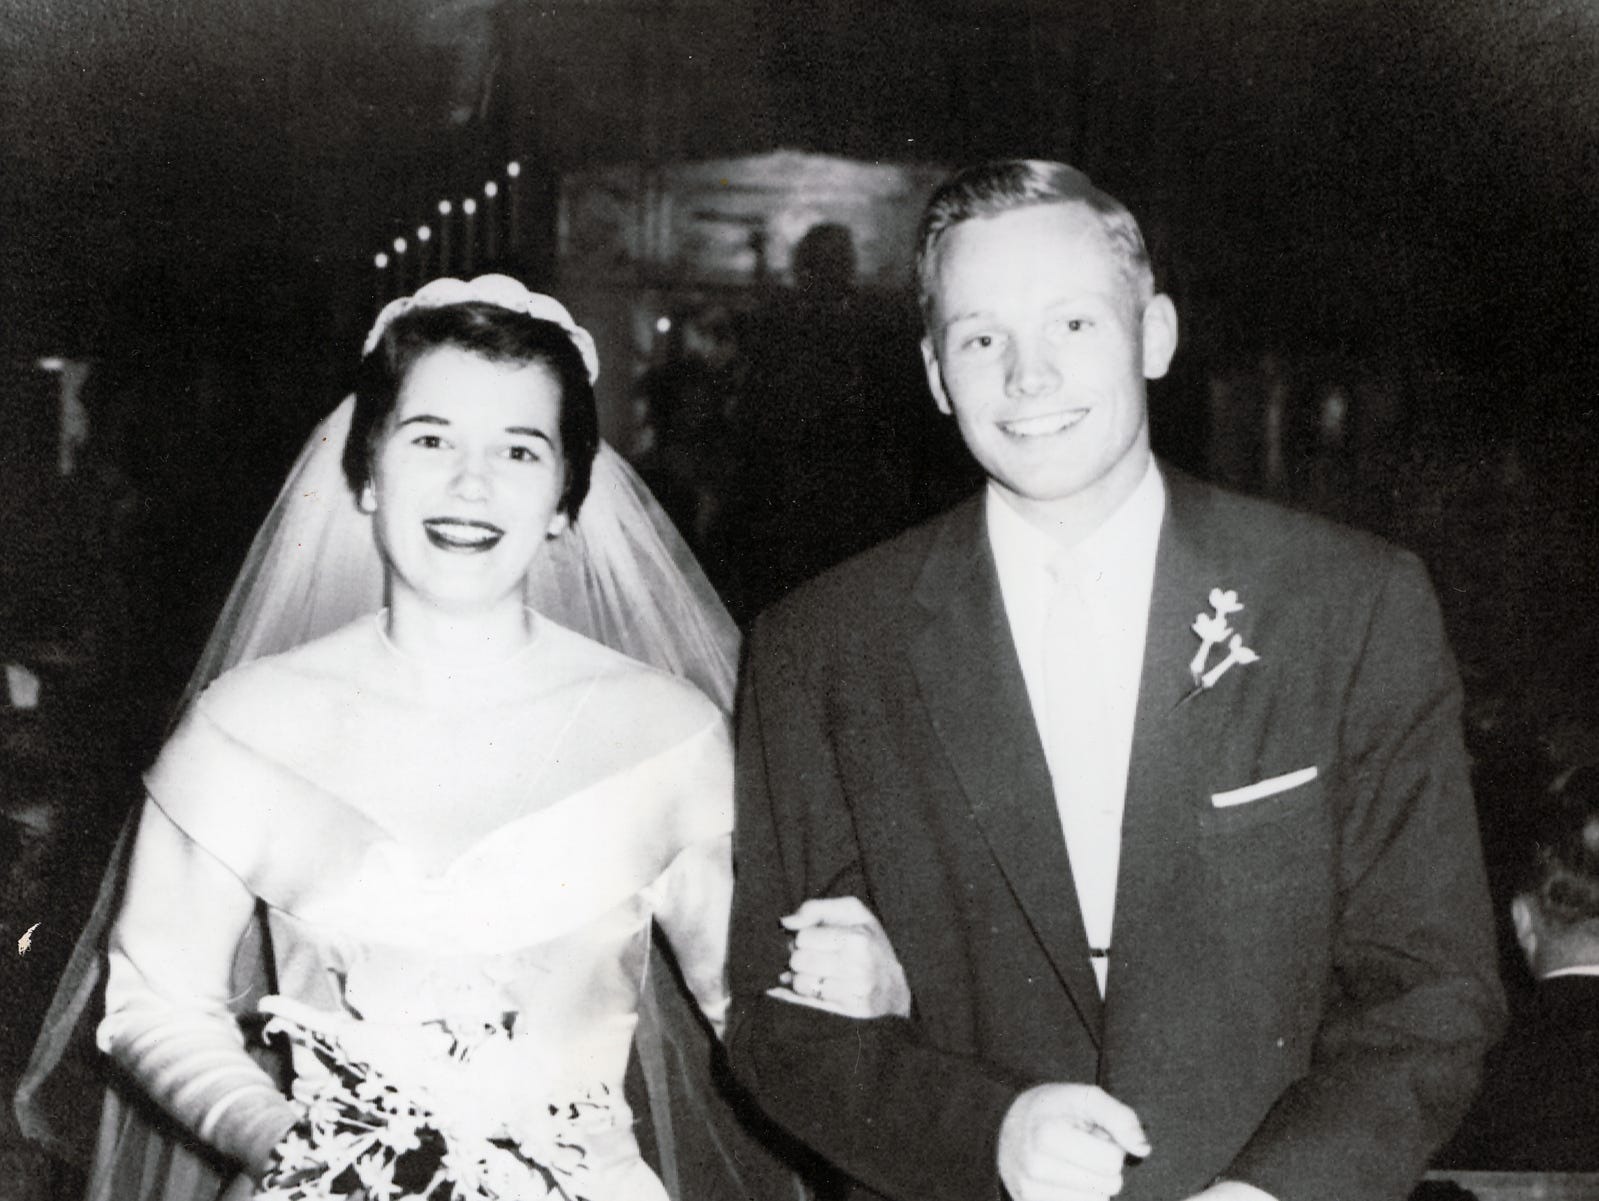 Neil Alden Armstrong, the Apollo 11 astronaut who is slated to be the first human to touch on the lunar surface later this month, is shown with his bride, the former Janet Shearon, at their marriage in 1956.